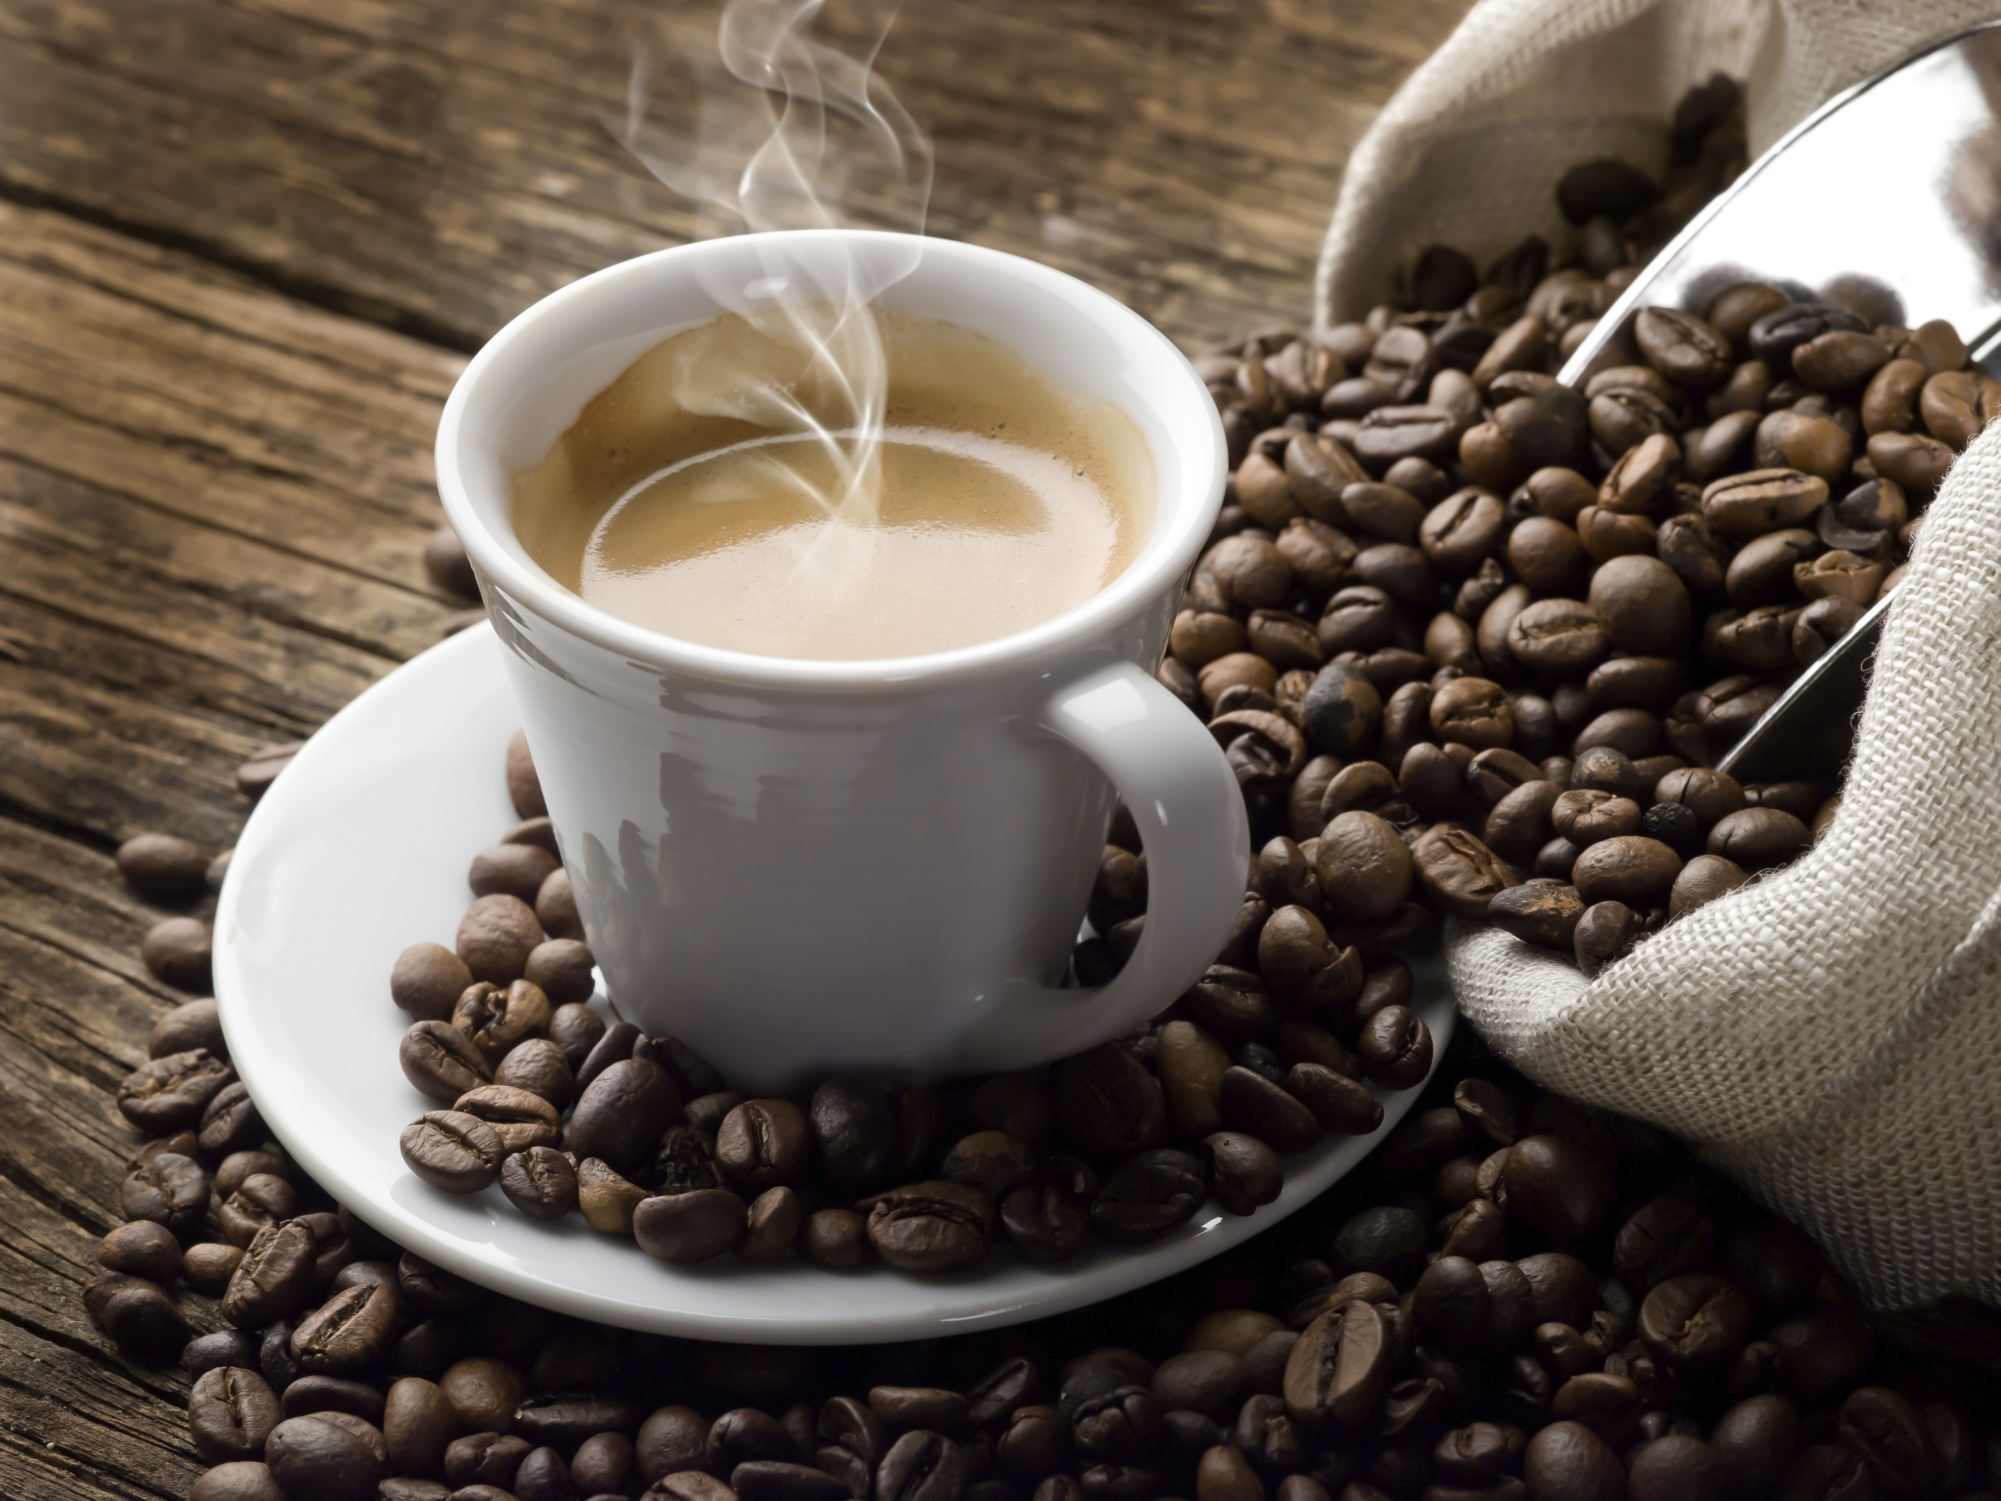 Coffee intake reduces endometrial cancer risk by 18%: study